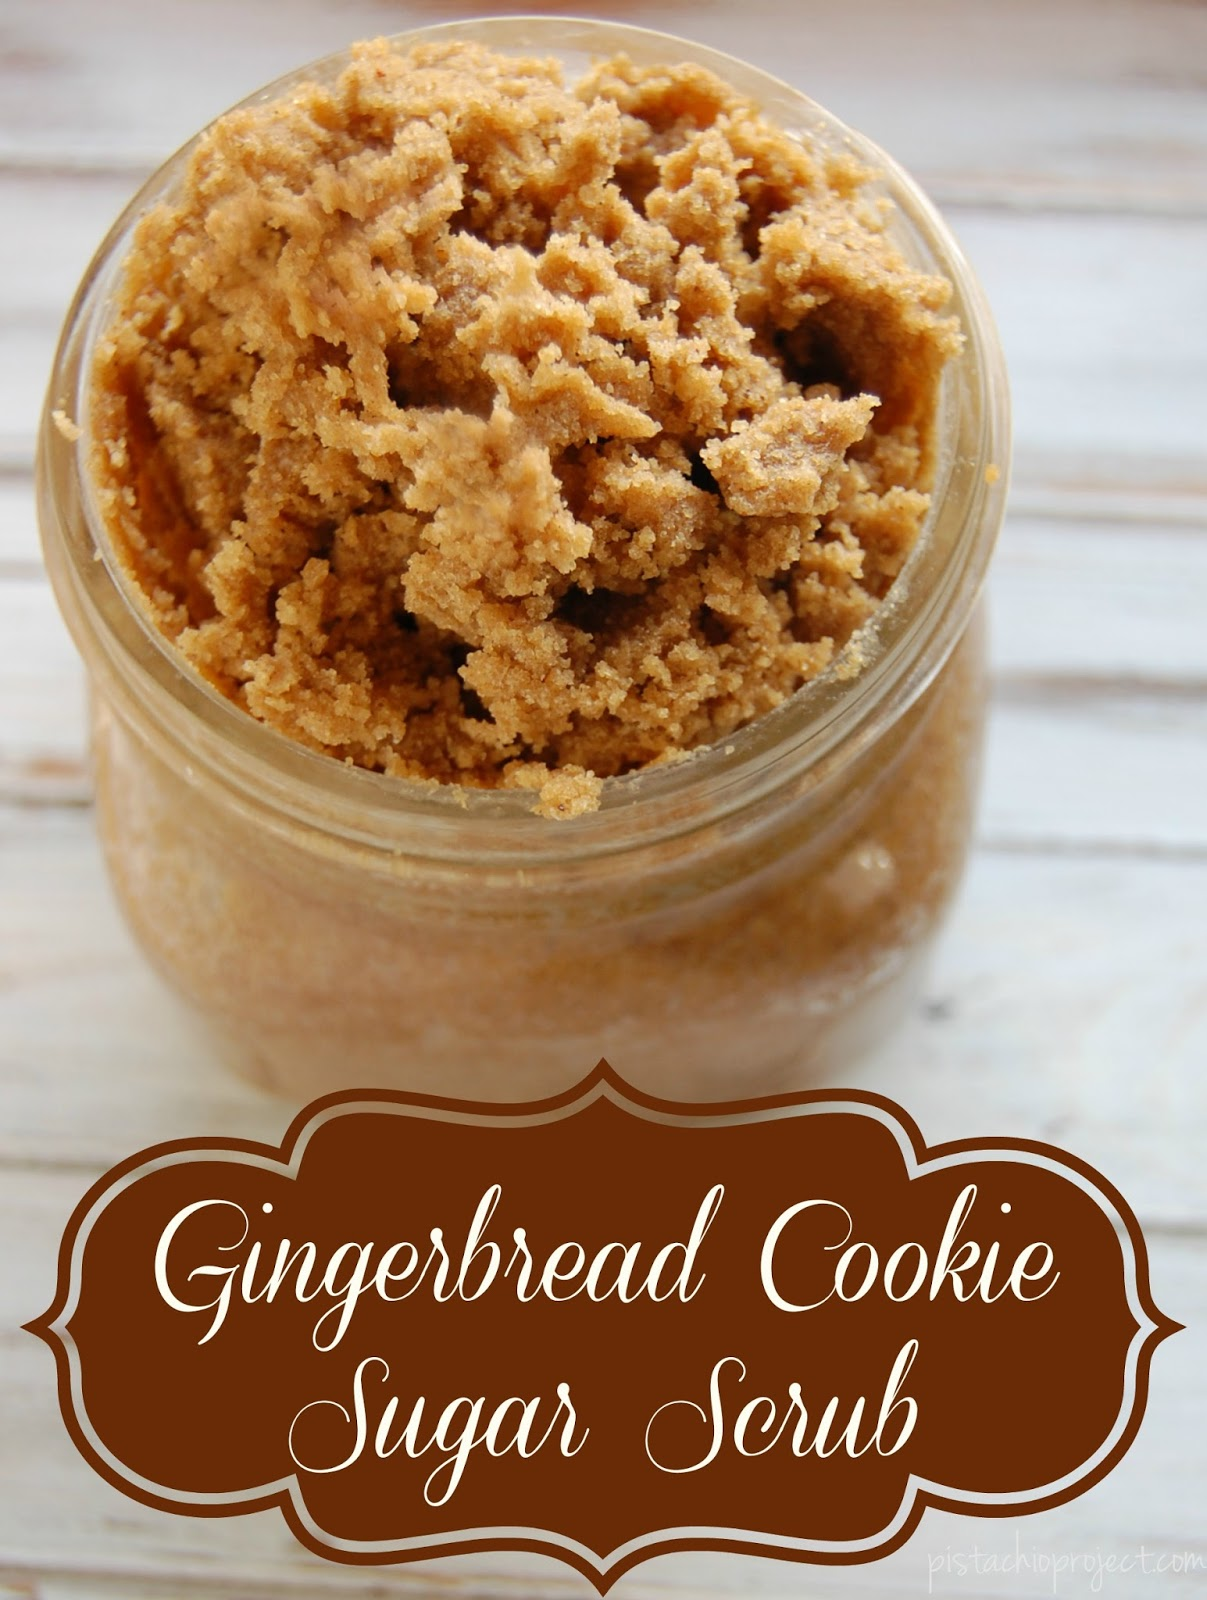 Gingerbread Cookie Sugar Scrub -This gingerbread cookie inspired scrub will help exfoliate and help moisturize your skin. Along with the exfoliating power of sugar and the moisturizing benefits of oil, there are also a few great ingredients that do more than just make this scrub smell like gingerbread men!